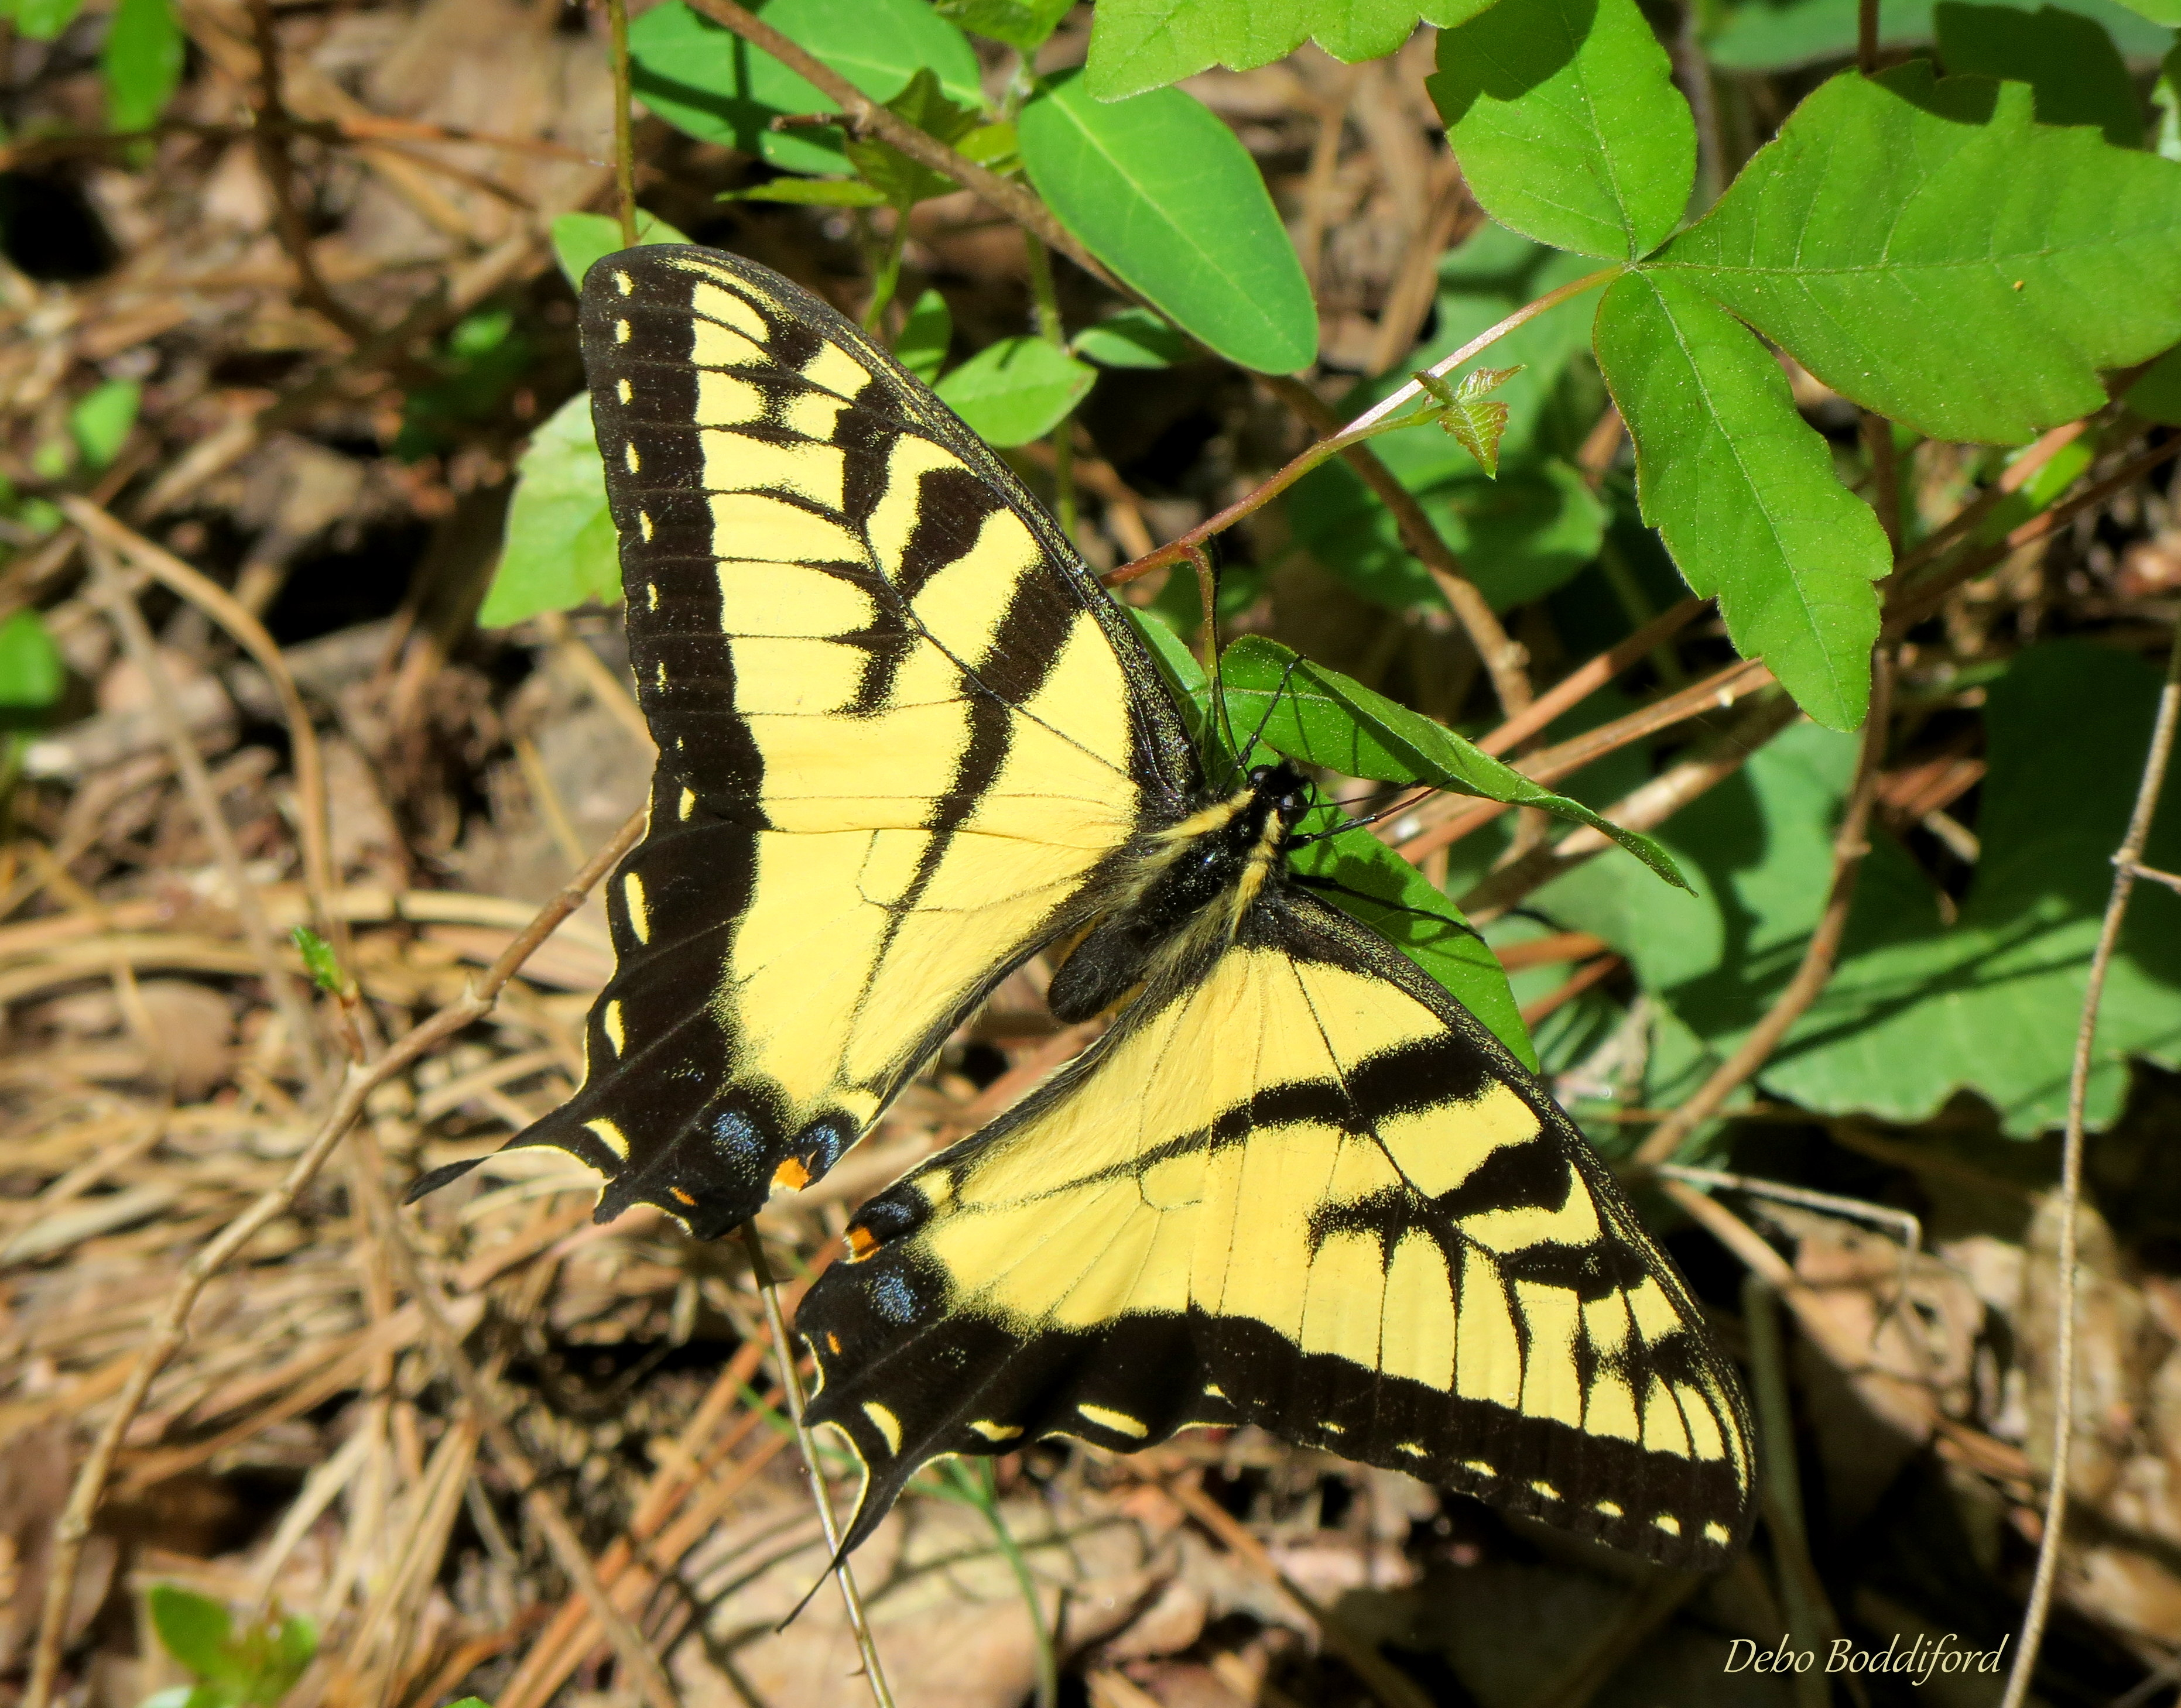 The Butterfly Site - The #1 Butterflies Information Source